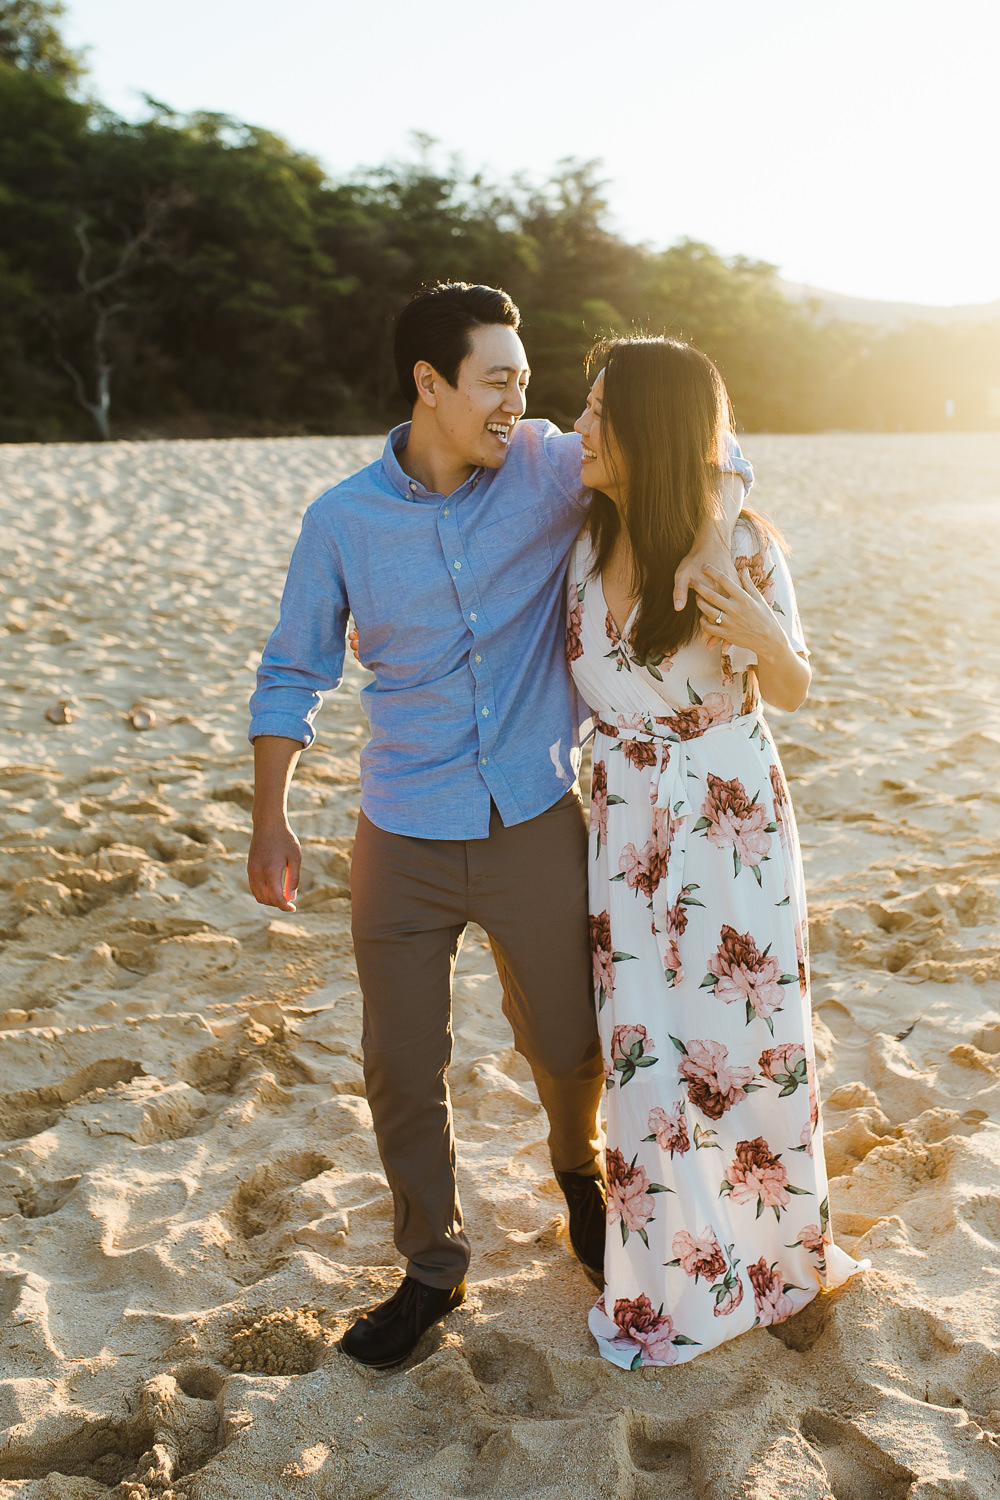 couples_engagement_photos_wailea_maui-3.jpg